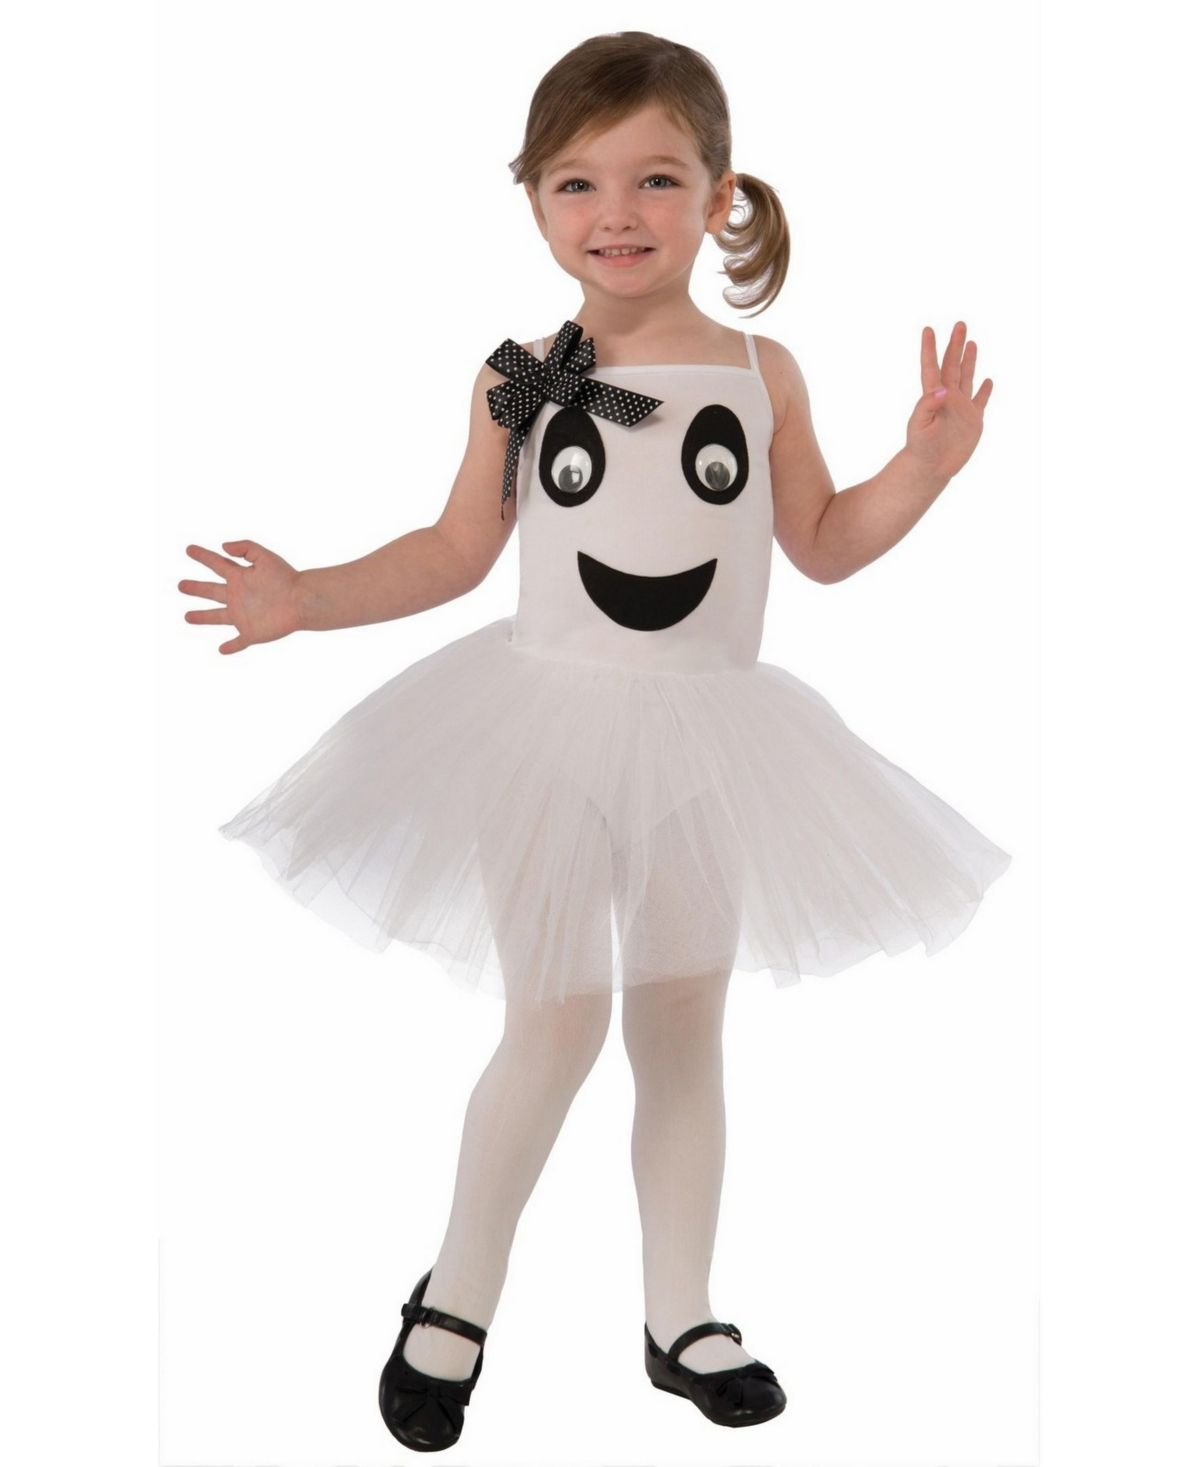 BuySeasons Boo - Tiful Ballerina Toddler Little and Big Girl's Costume & Reviews - Macy's #deguisementfantomeenfant